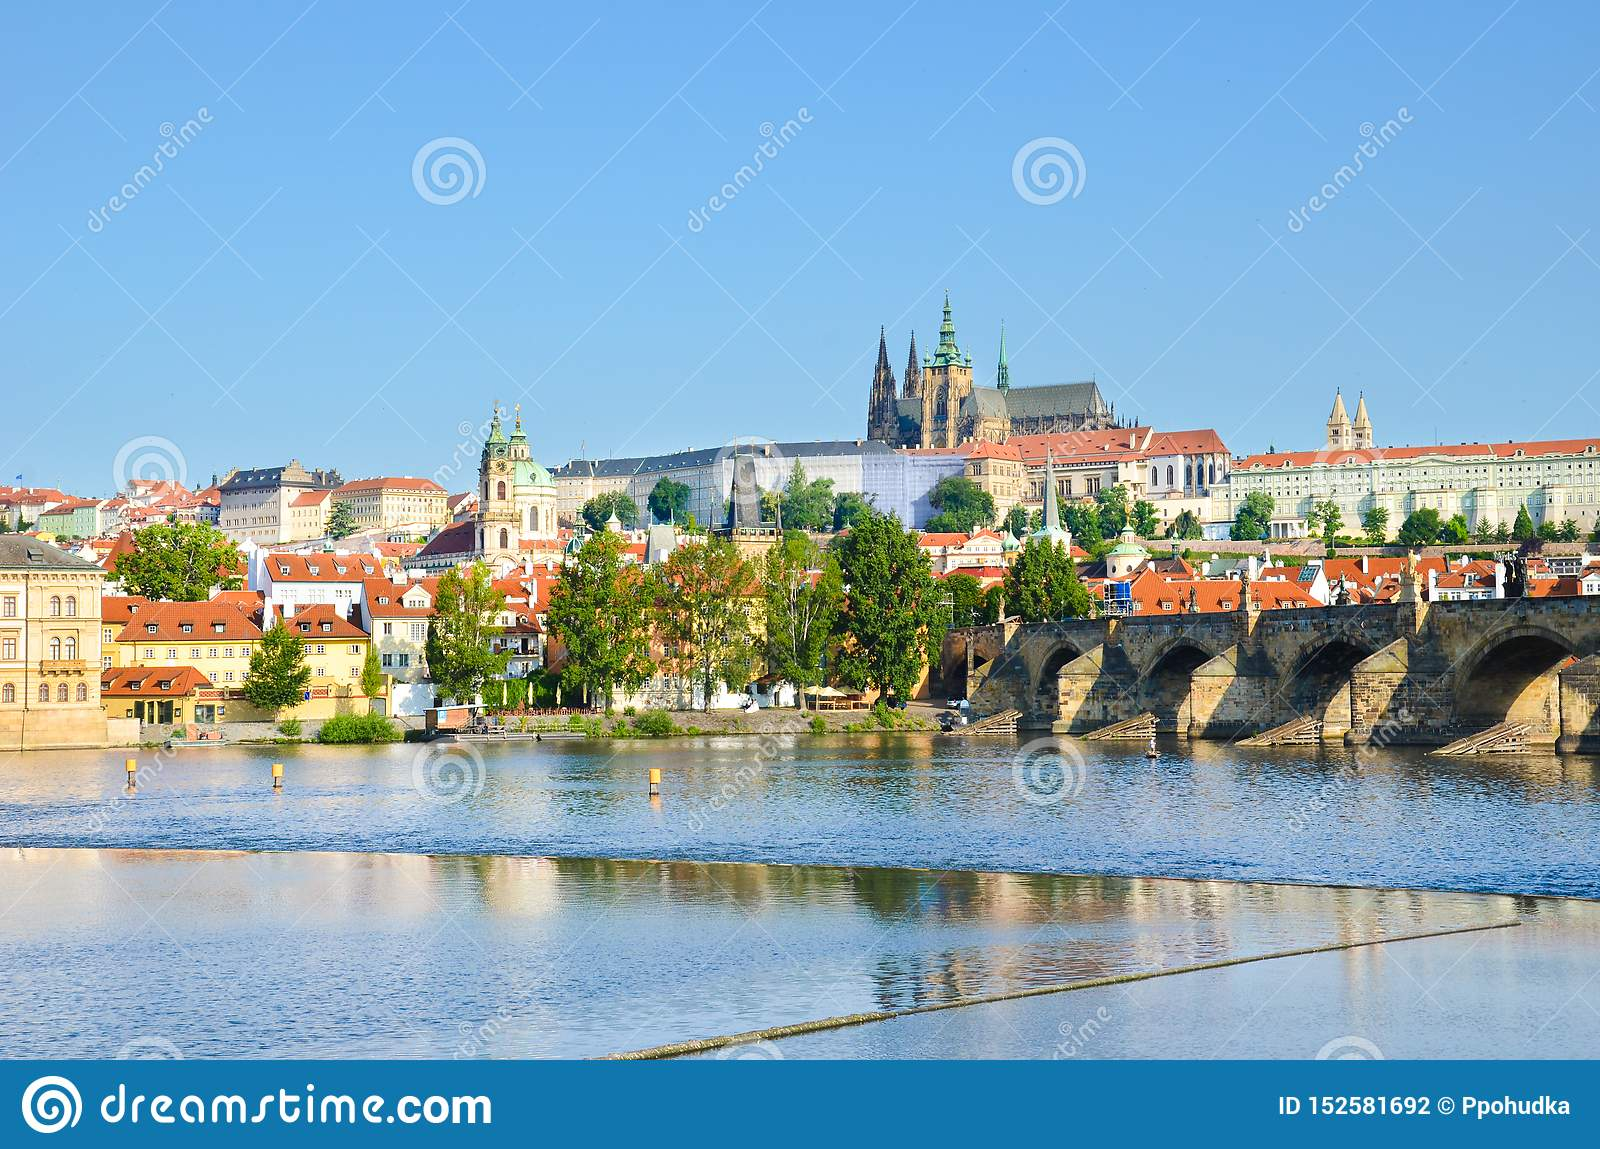 Stunning cityscape of Prague, Bohemia, Czech Republic photographed with dominant Prague Castle and Charles Bridge. The beautiful